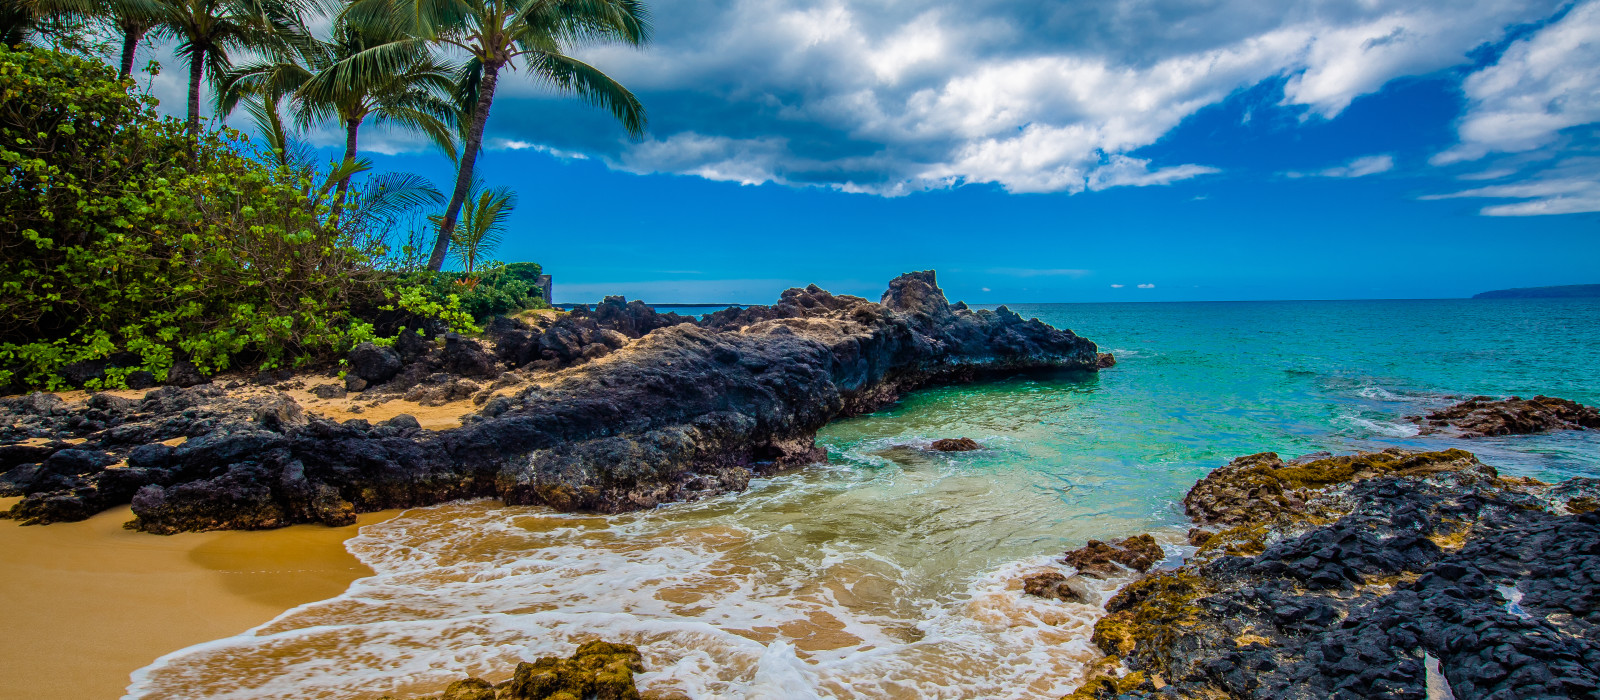 Destination Maui Hawaii